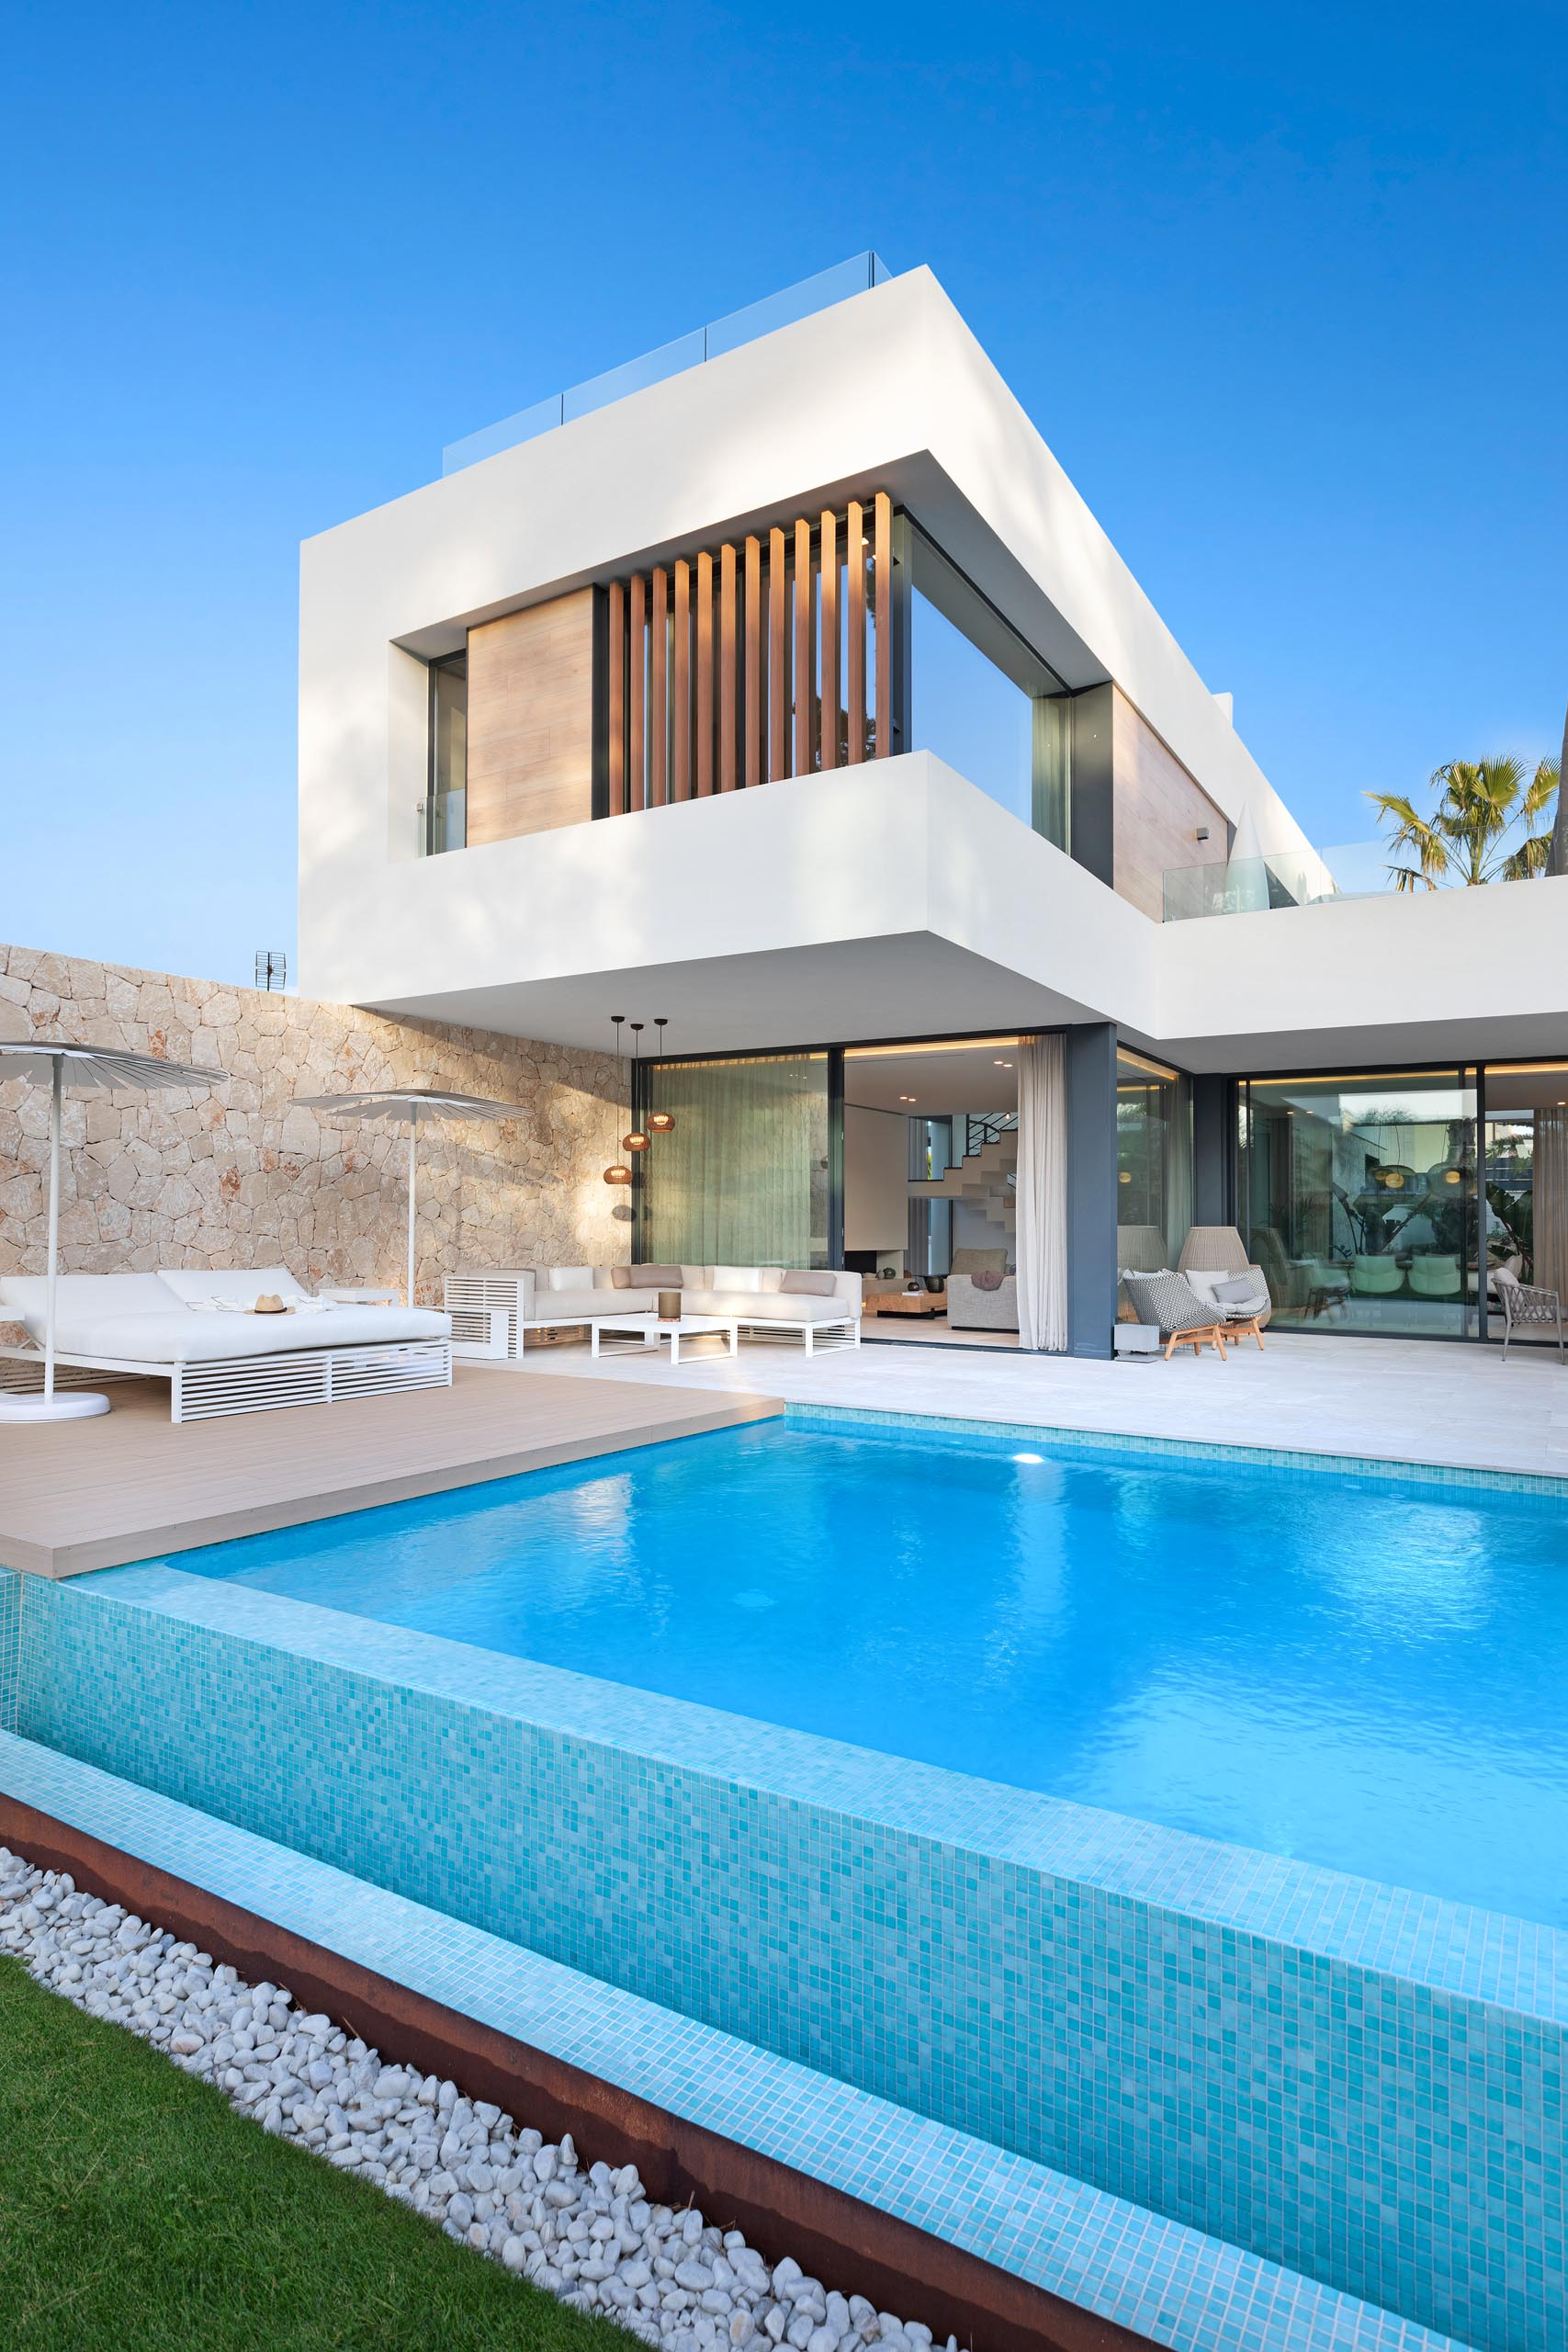 A modern home with a swimming pool, stone walls, a deck, and partially covered patio.